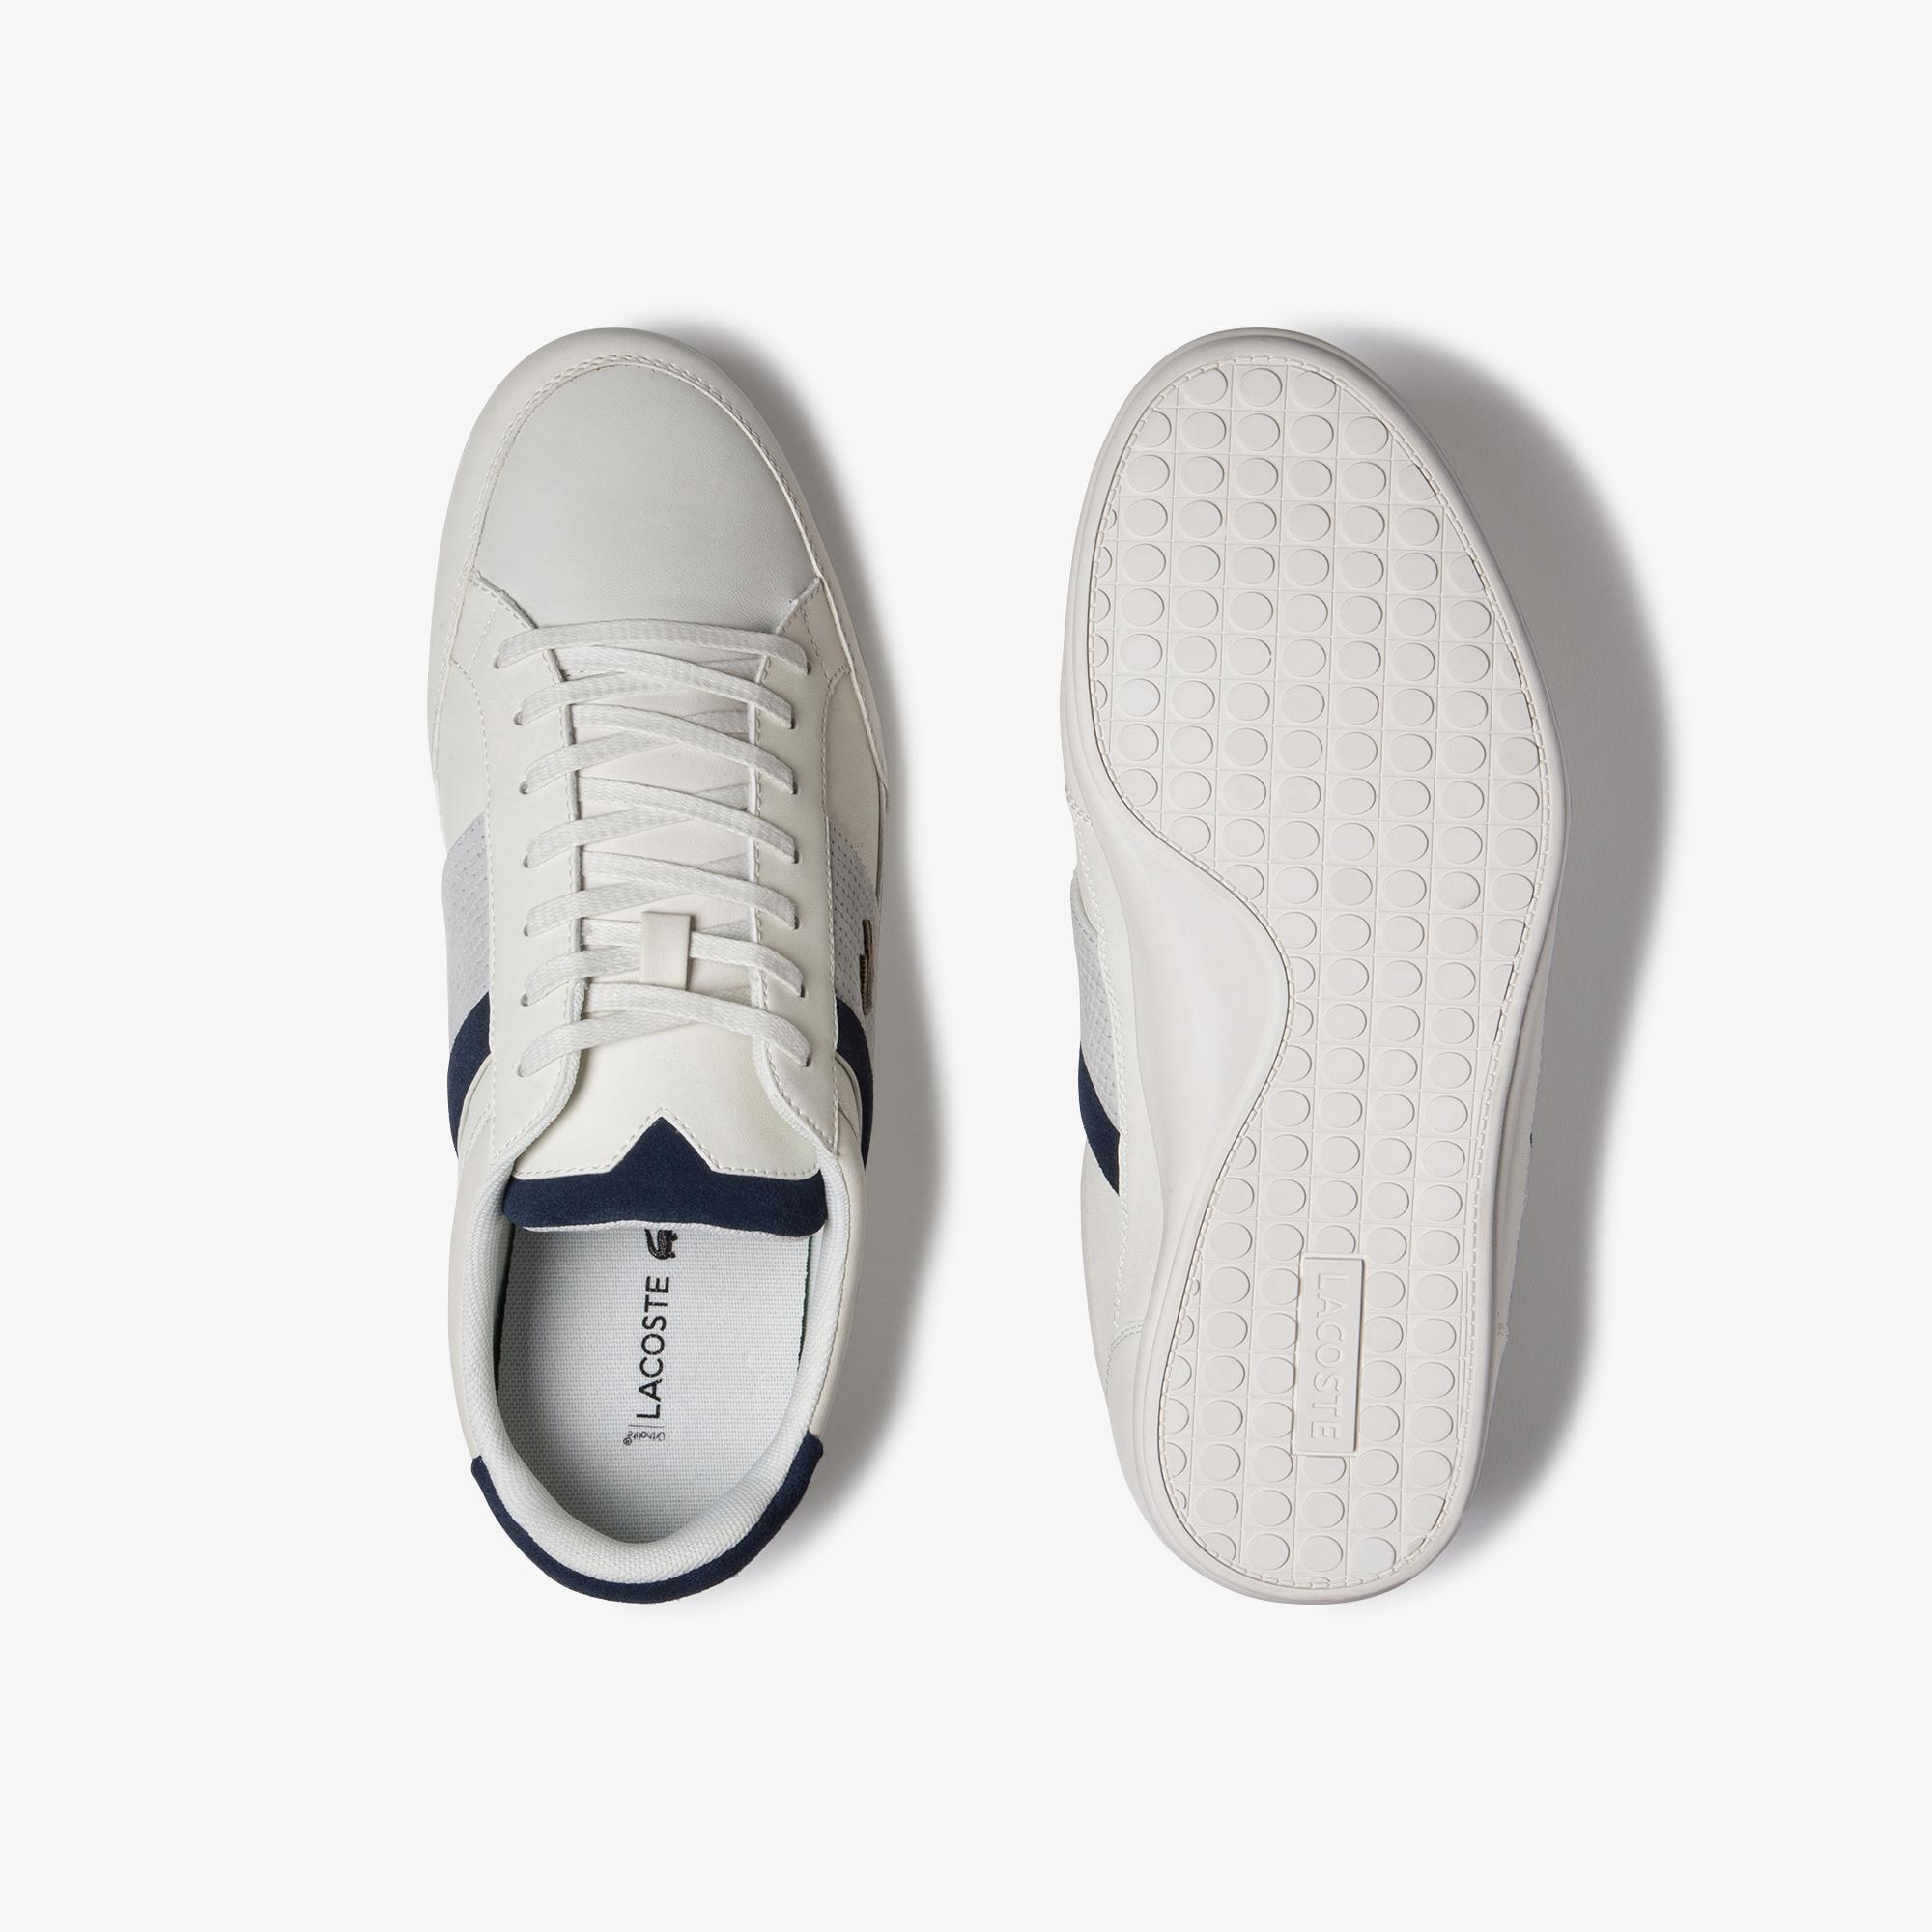 Lacoste Chaymon 120 4 Men's Sneakers